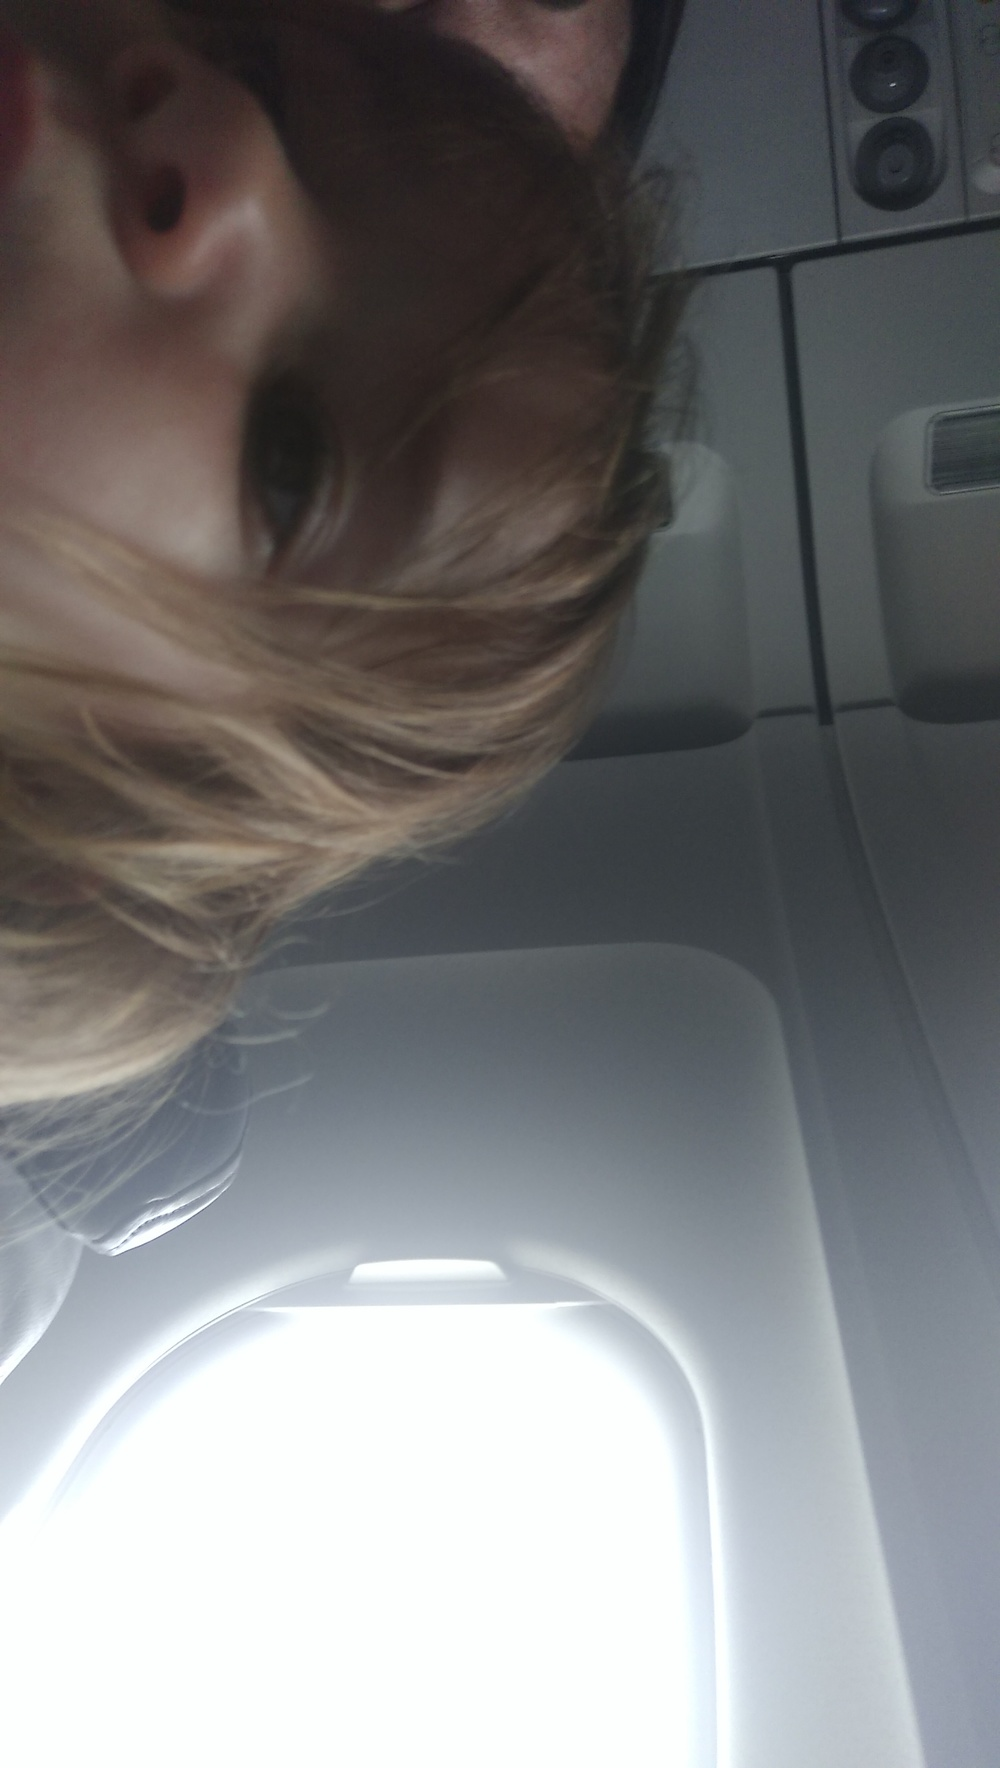 Cece took this picture on the plane